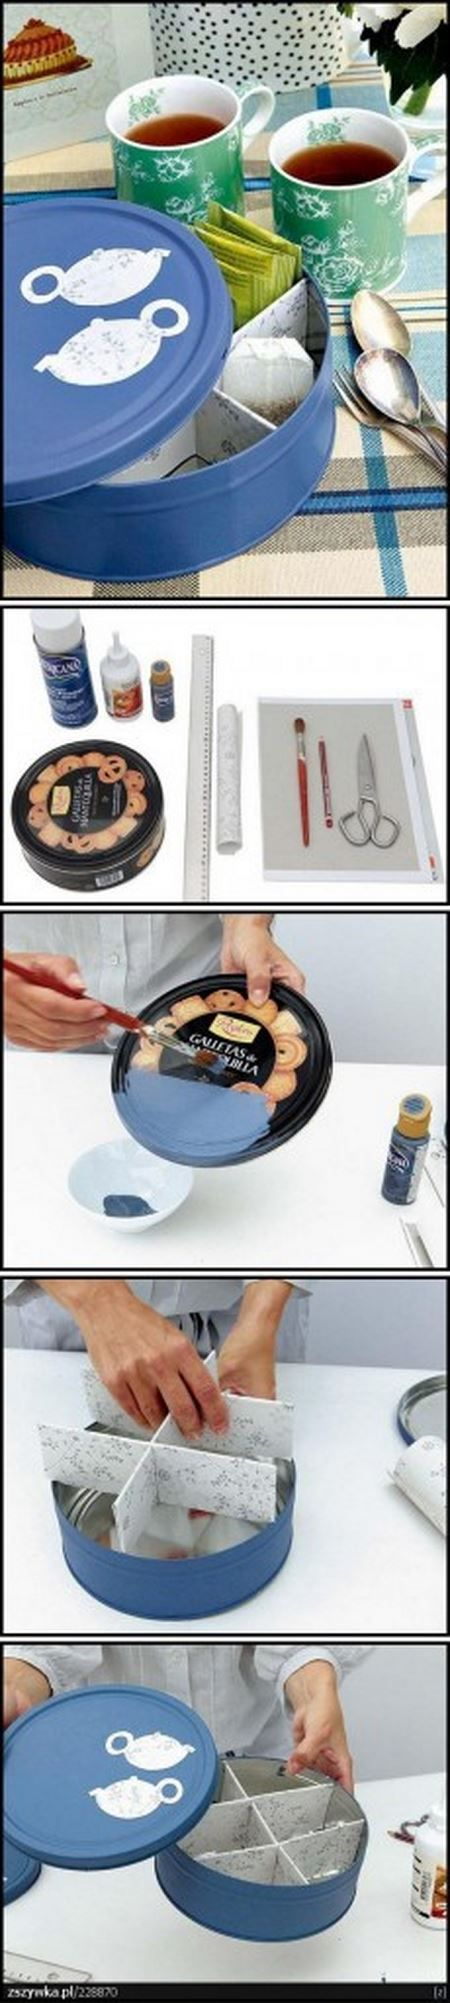 Reuse an old tin:  spray paint, glue tea images to lid, make partitions for interior, and use for storing tea bags.